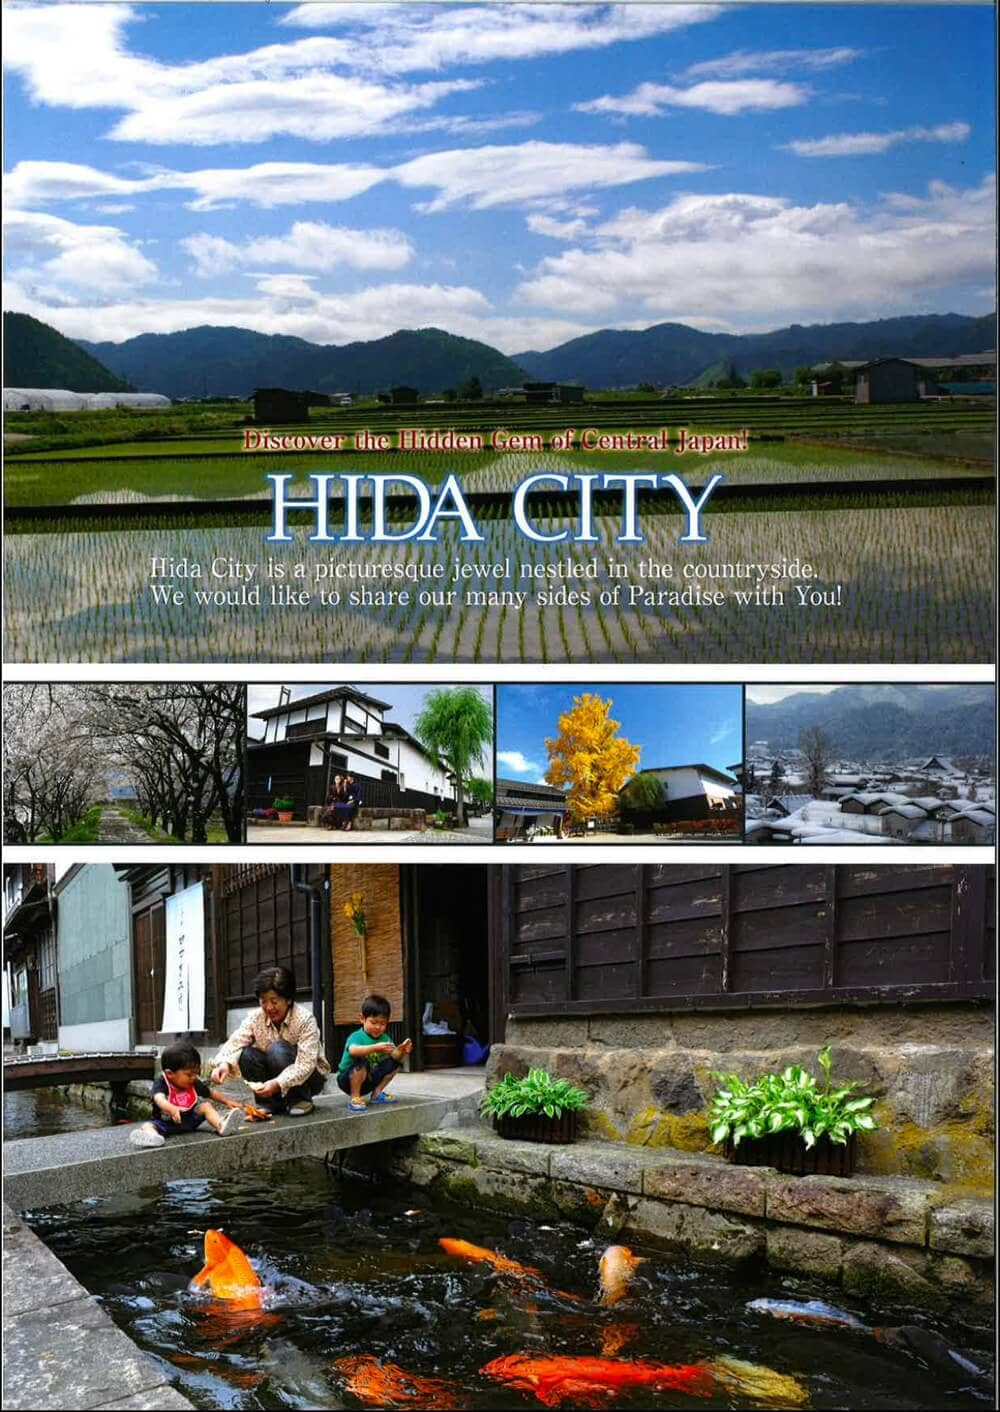 Discover-the-Hiddn-Gem-of-Central-Japan!HIDA-CITY